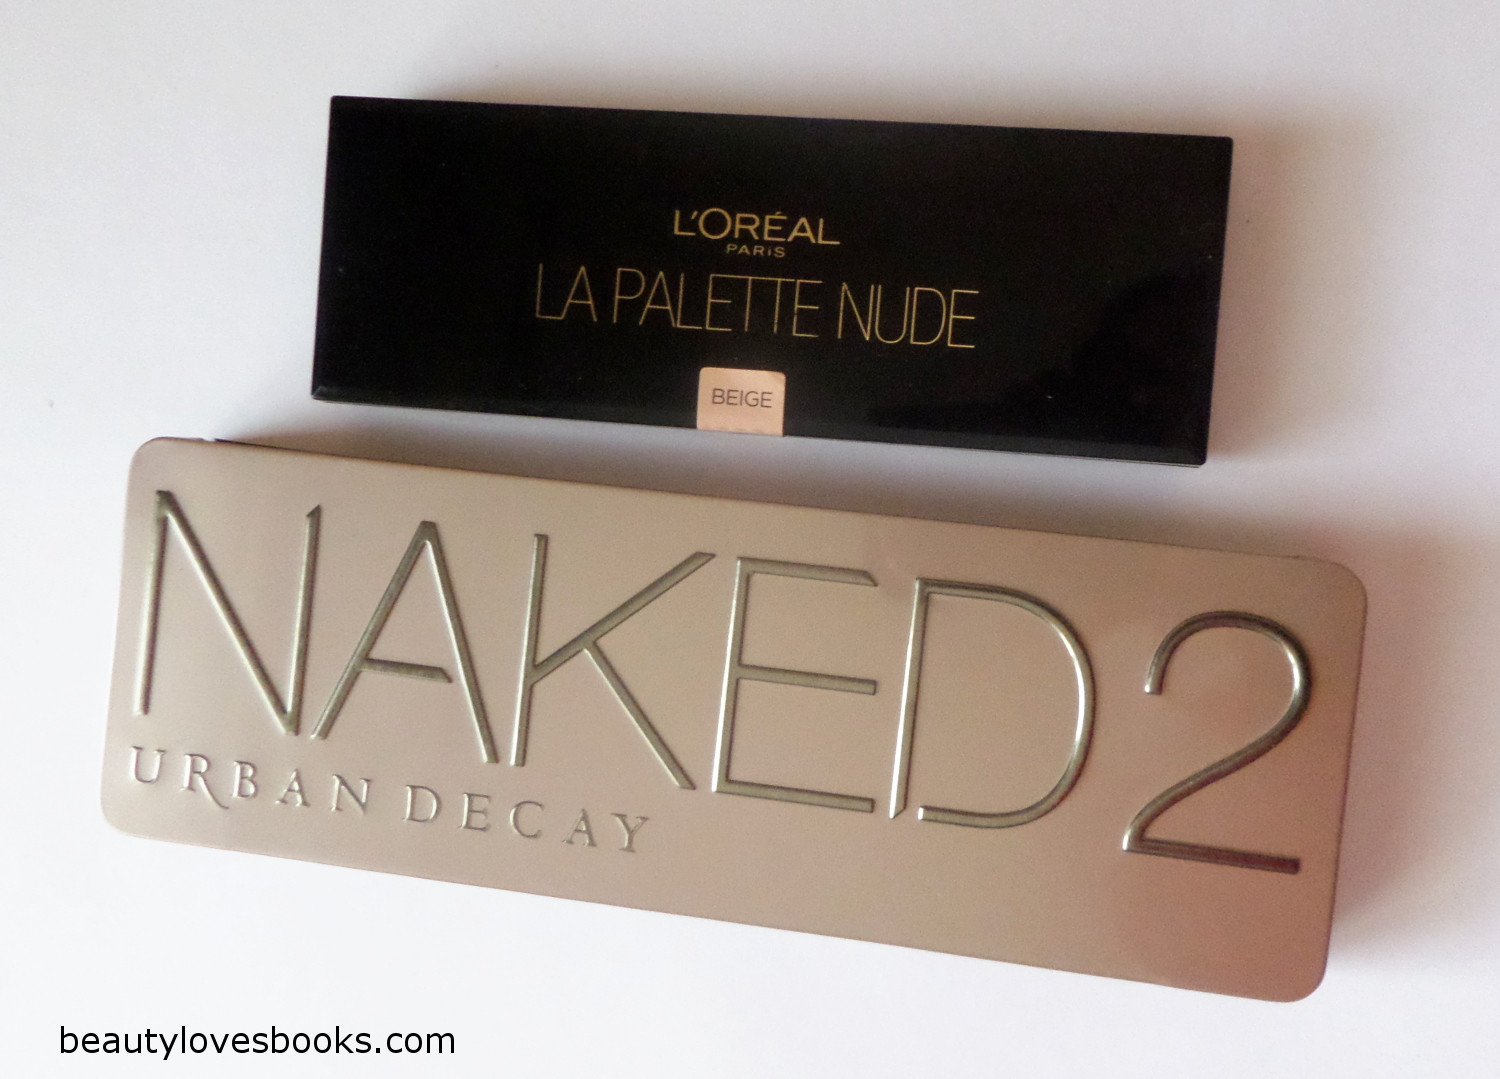 L'Oreal La palette nude Beige and NAKED 2